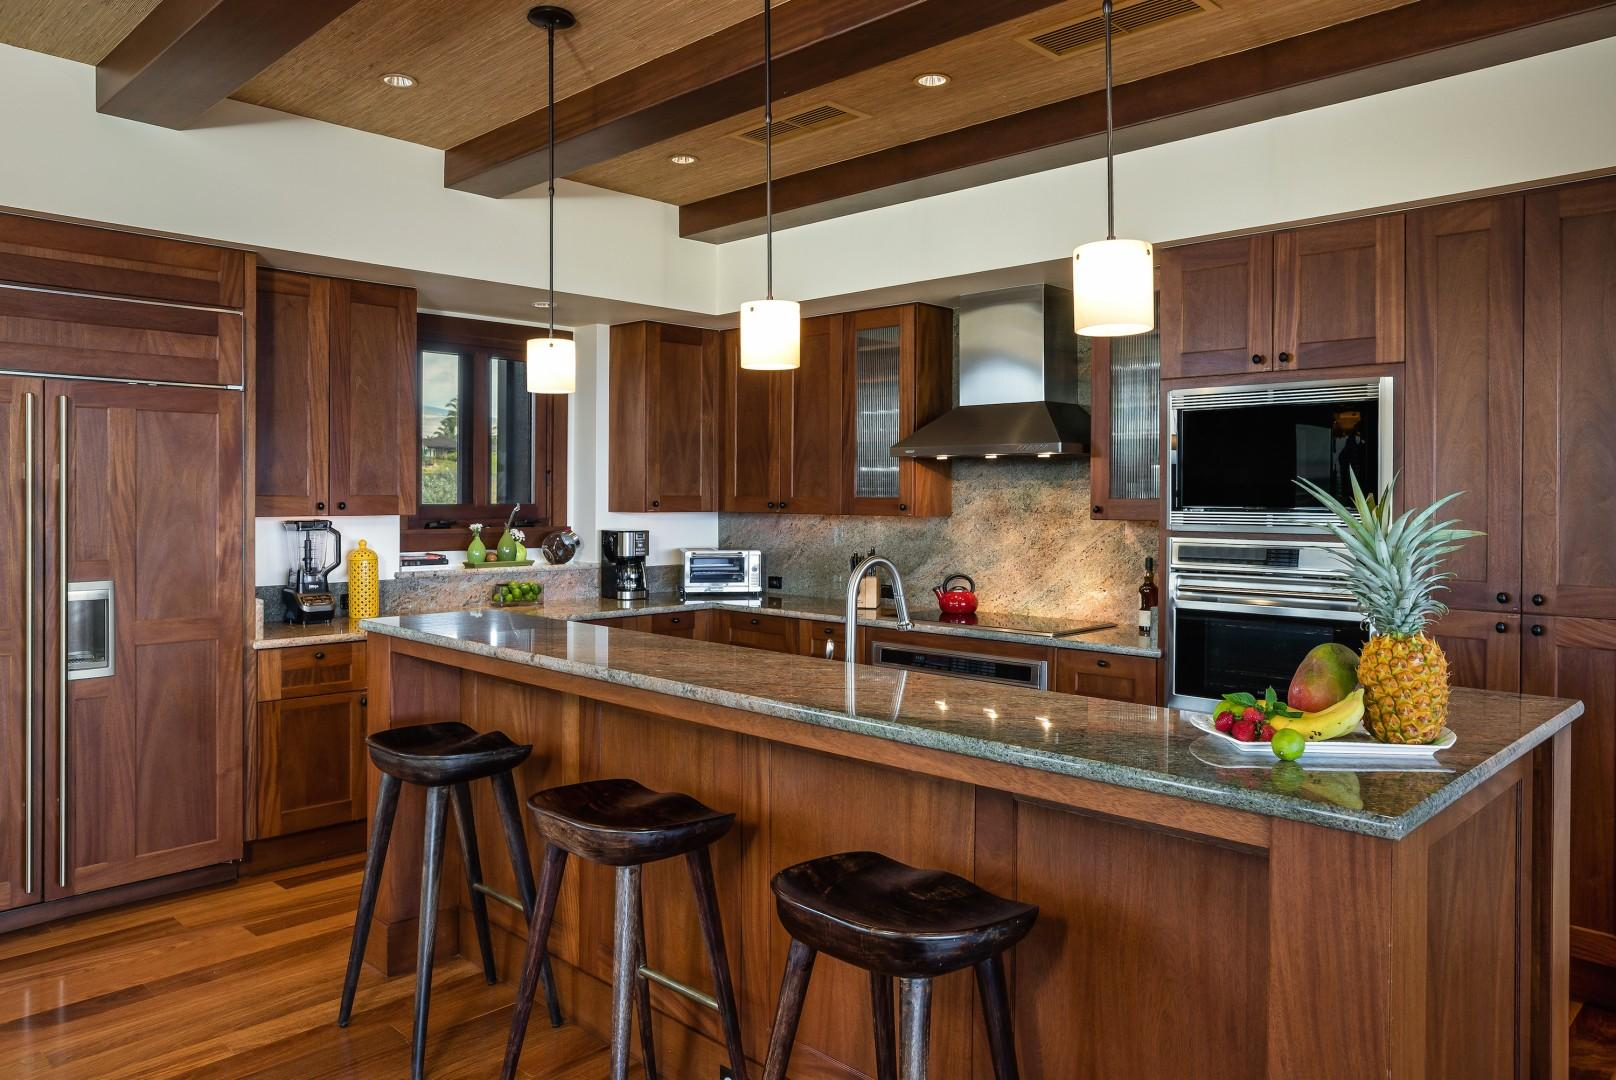 Gourmet kitchen with top-tier appliances and bar seating.